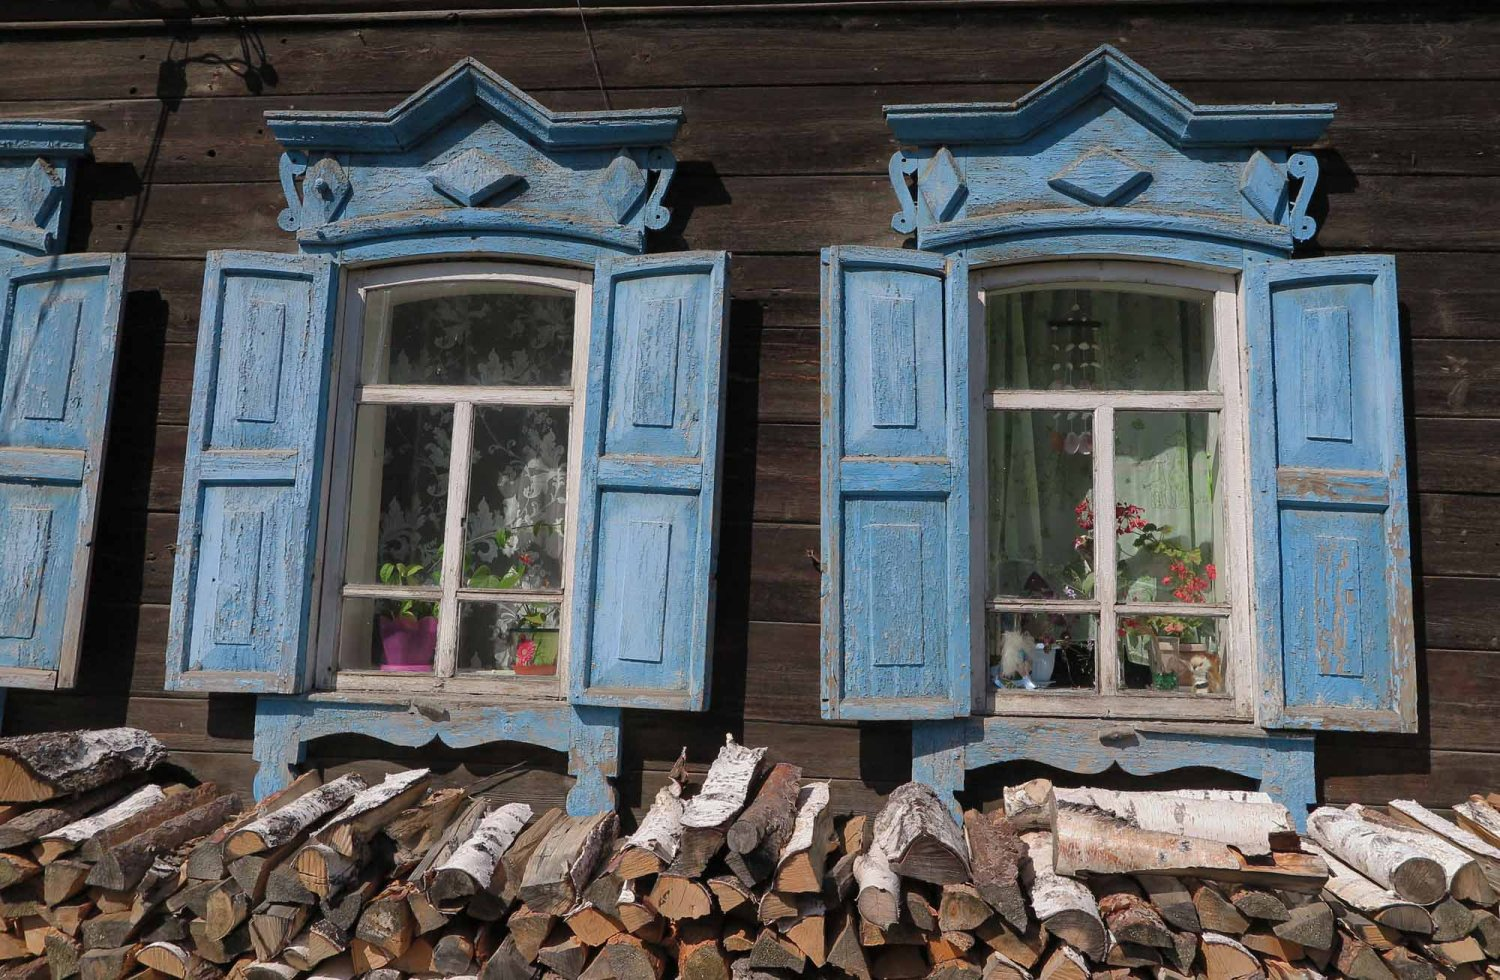 Russia-Trans-Siberian-Railway-Listvyanka-Lake-Baikal-Windows